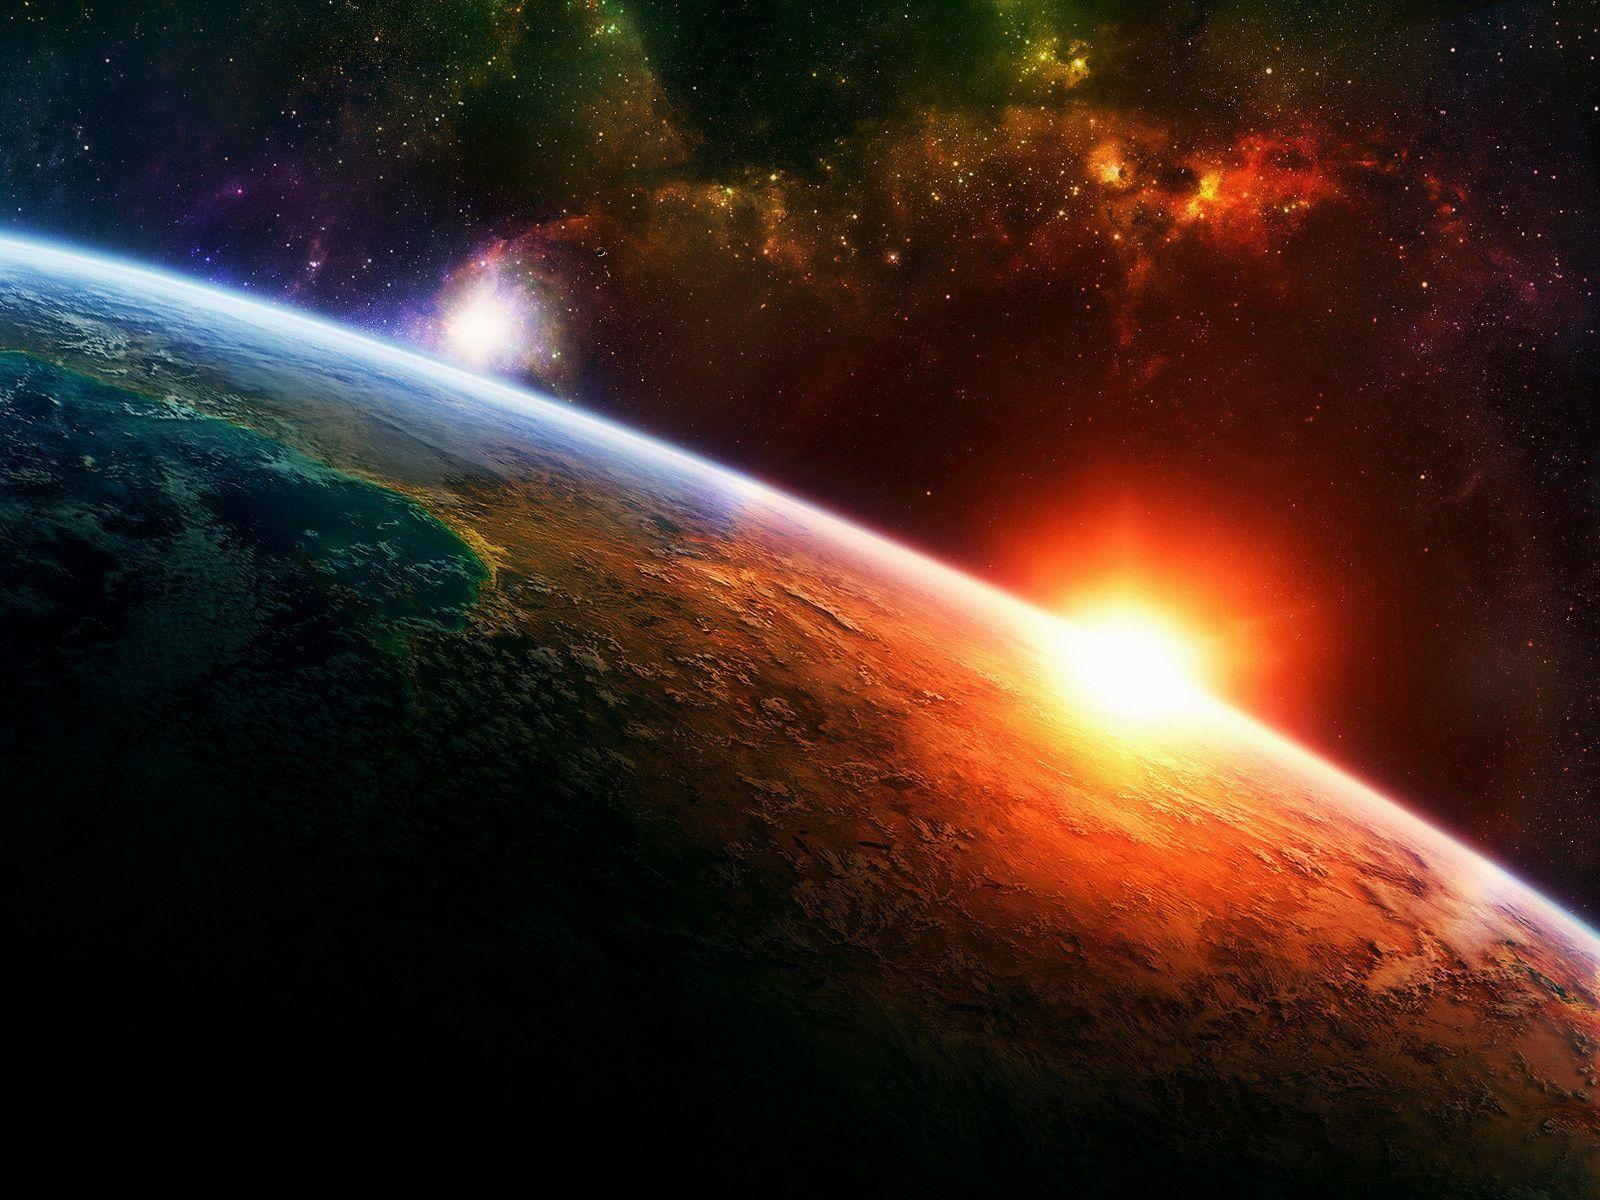 Marvelous Planet Earth and Space Wallpapers